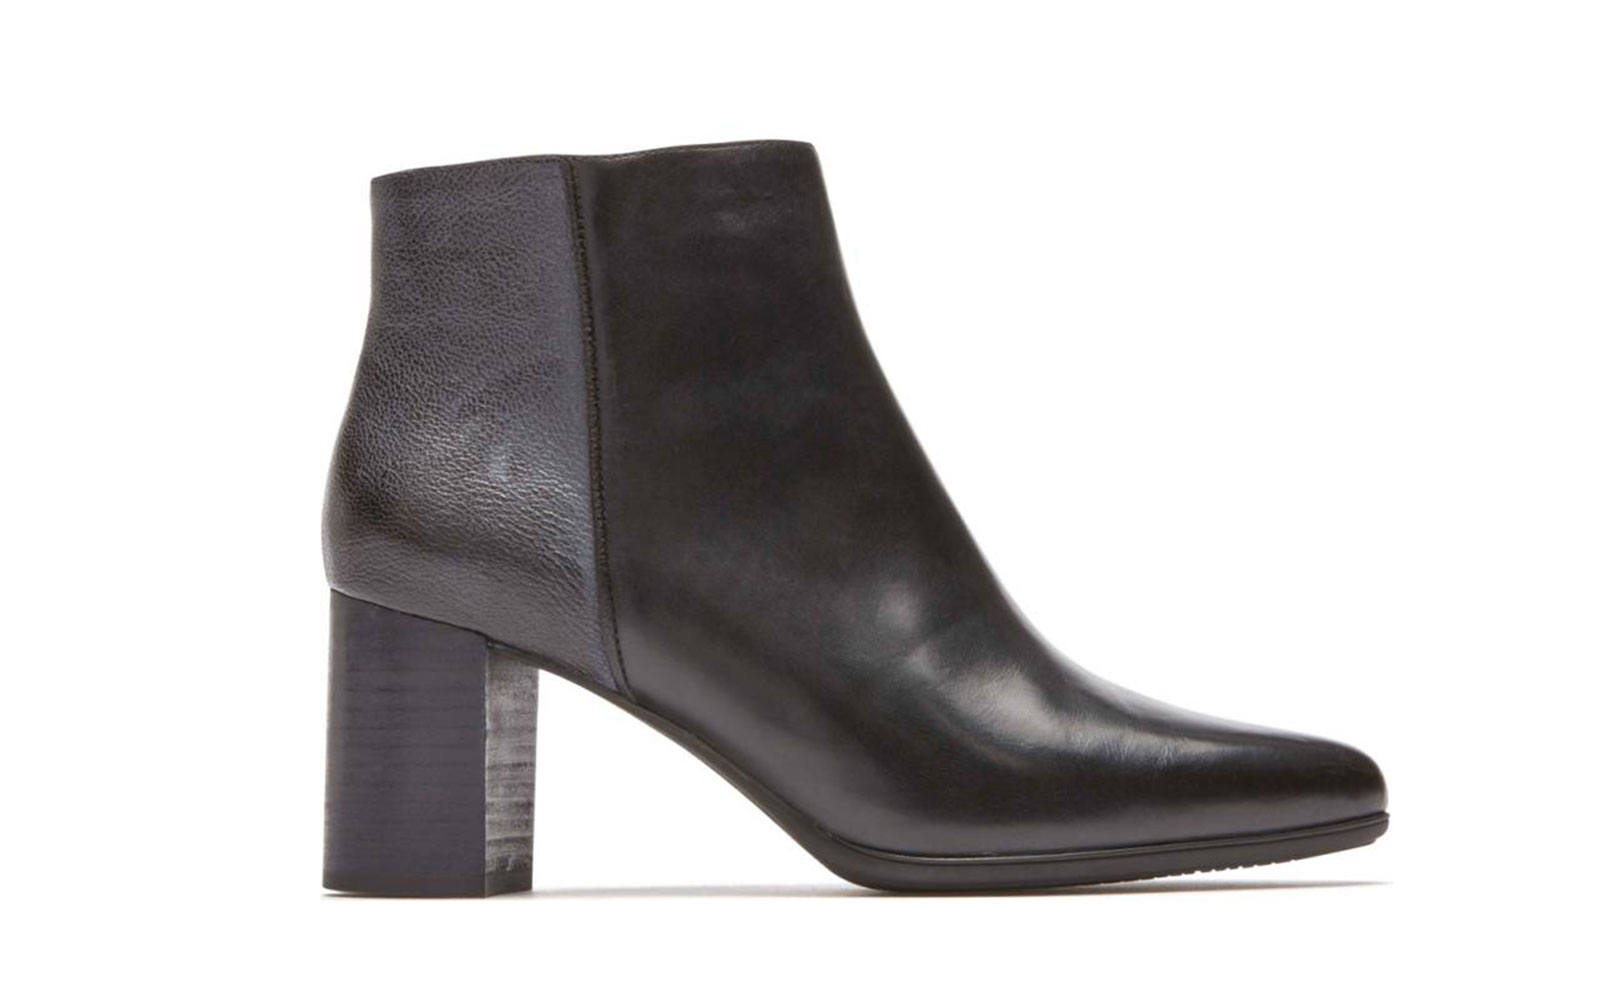 Sleek Block Heels With Comfort Technology